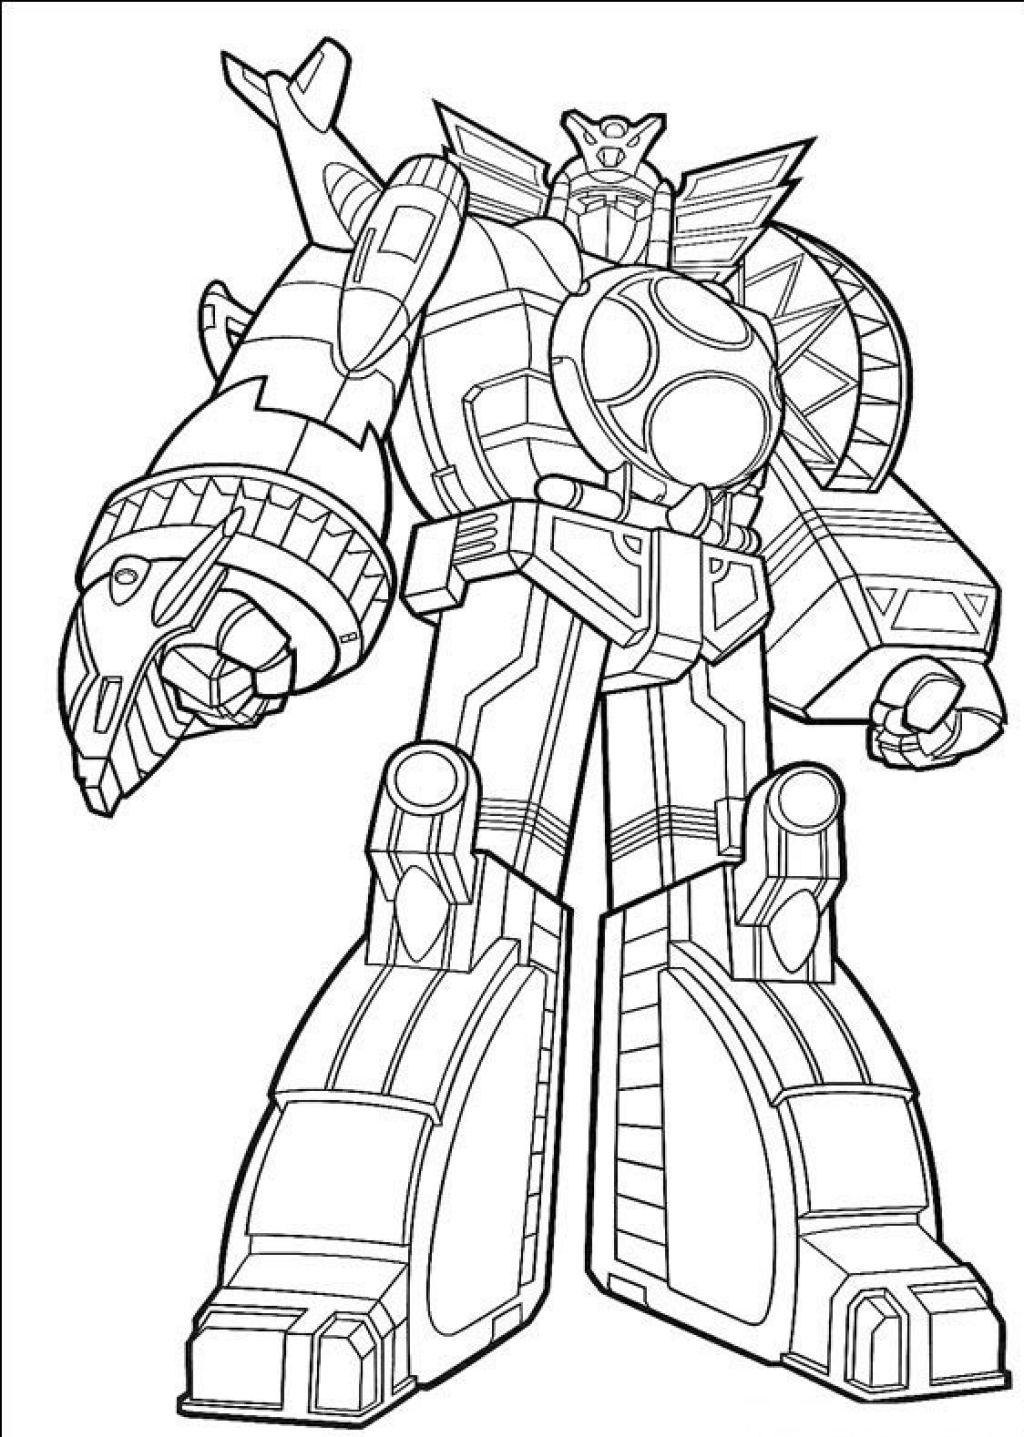 coloring pictures of power rangers printable power rangers coloring pages drawing pictures coloring of rangers power pictures